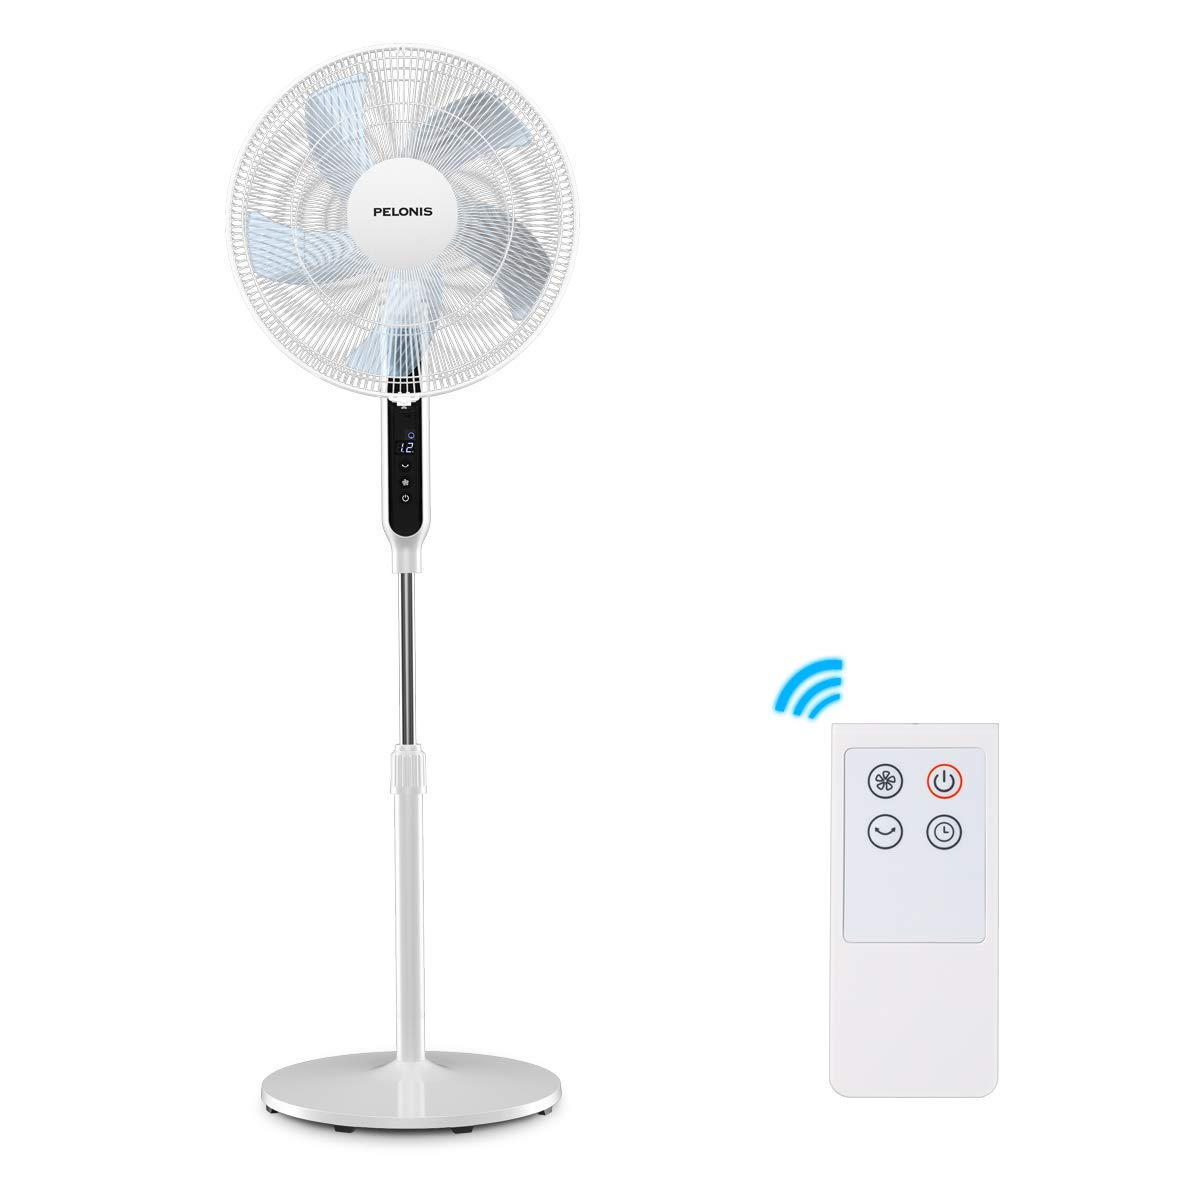 PELONIS DC Motor Quiet Pedestal Sleeping and Baby, Energy Efficiency Standing Fan Speed, 12-Hour Timer, Remote Control, and Adjustable Heights, FS40-19PRD, White, 16 inch, Black and White Renewed